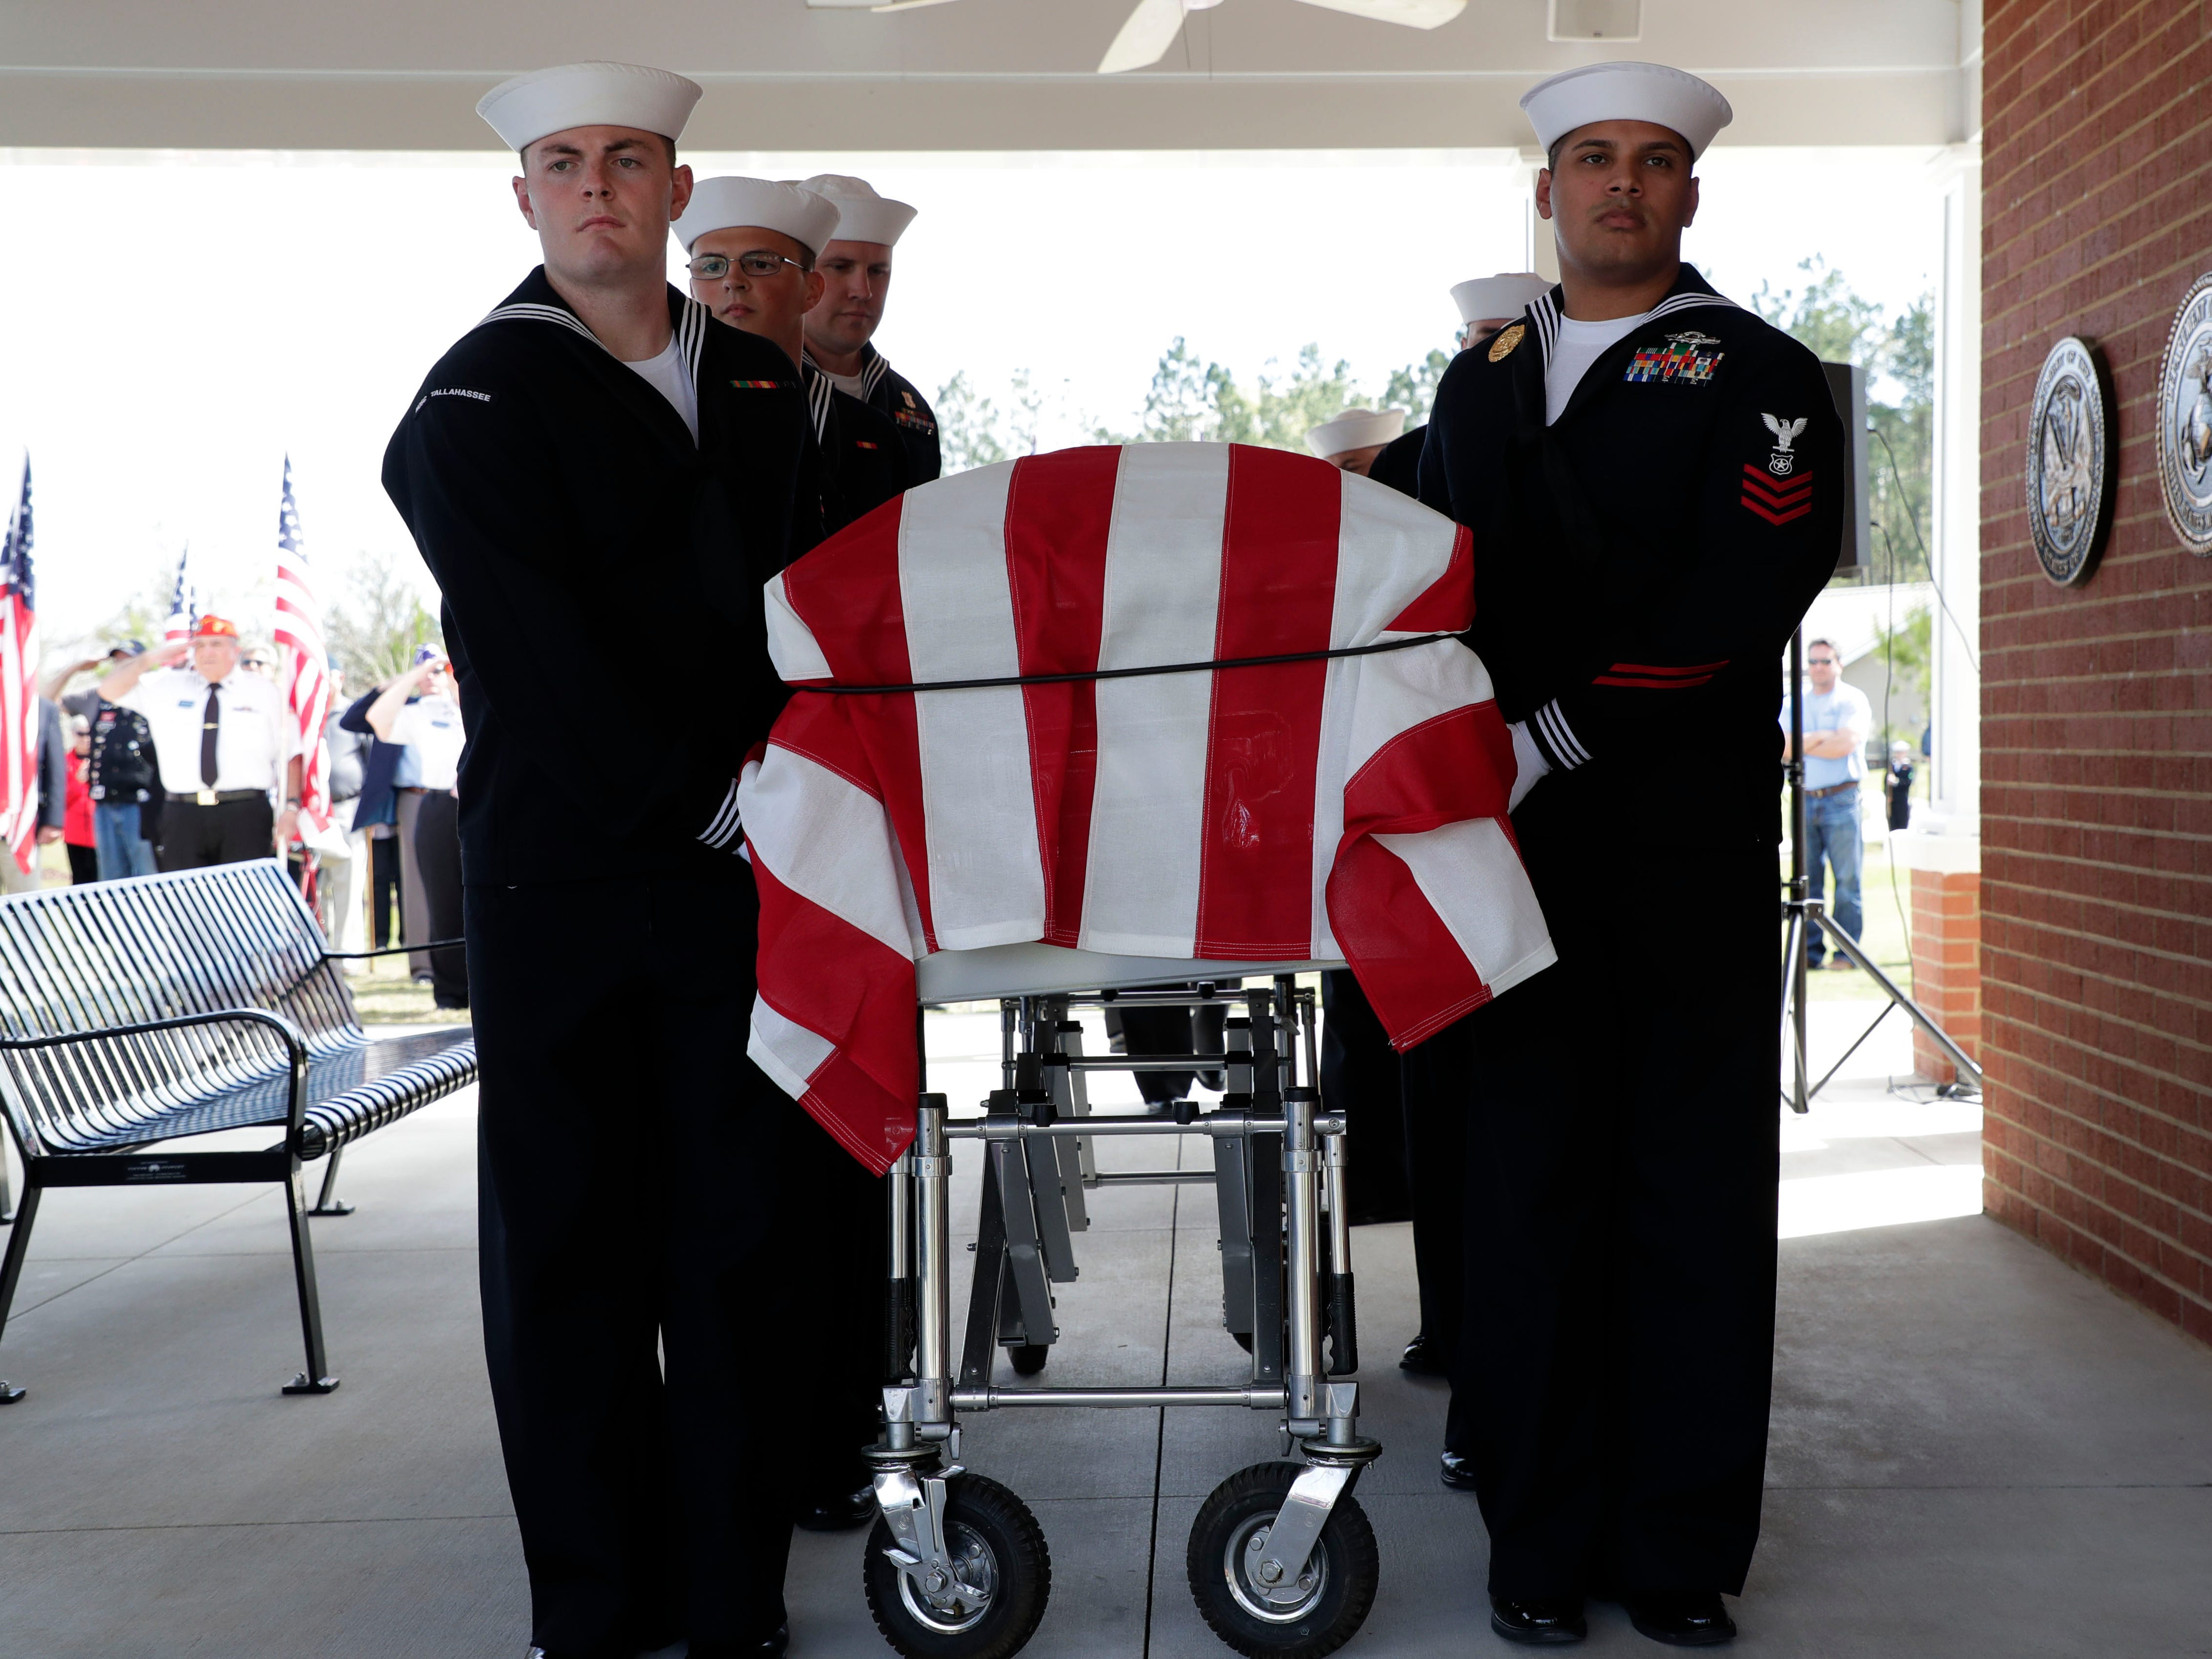 Members of Navy Operational Support Center Tallahassee carry the casket of Earl Baum, a sailor who was killed in Pearl Harbor. A funeral was held at the Tallahassee National Cemetery honoring Baum Friday, March 8, 2019.